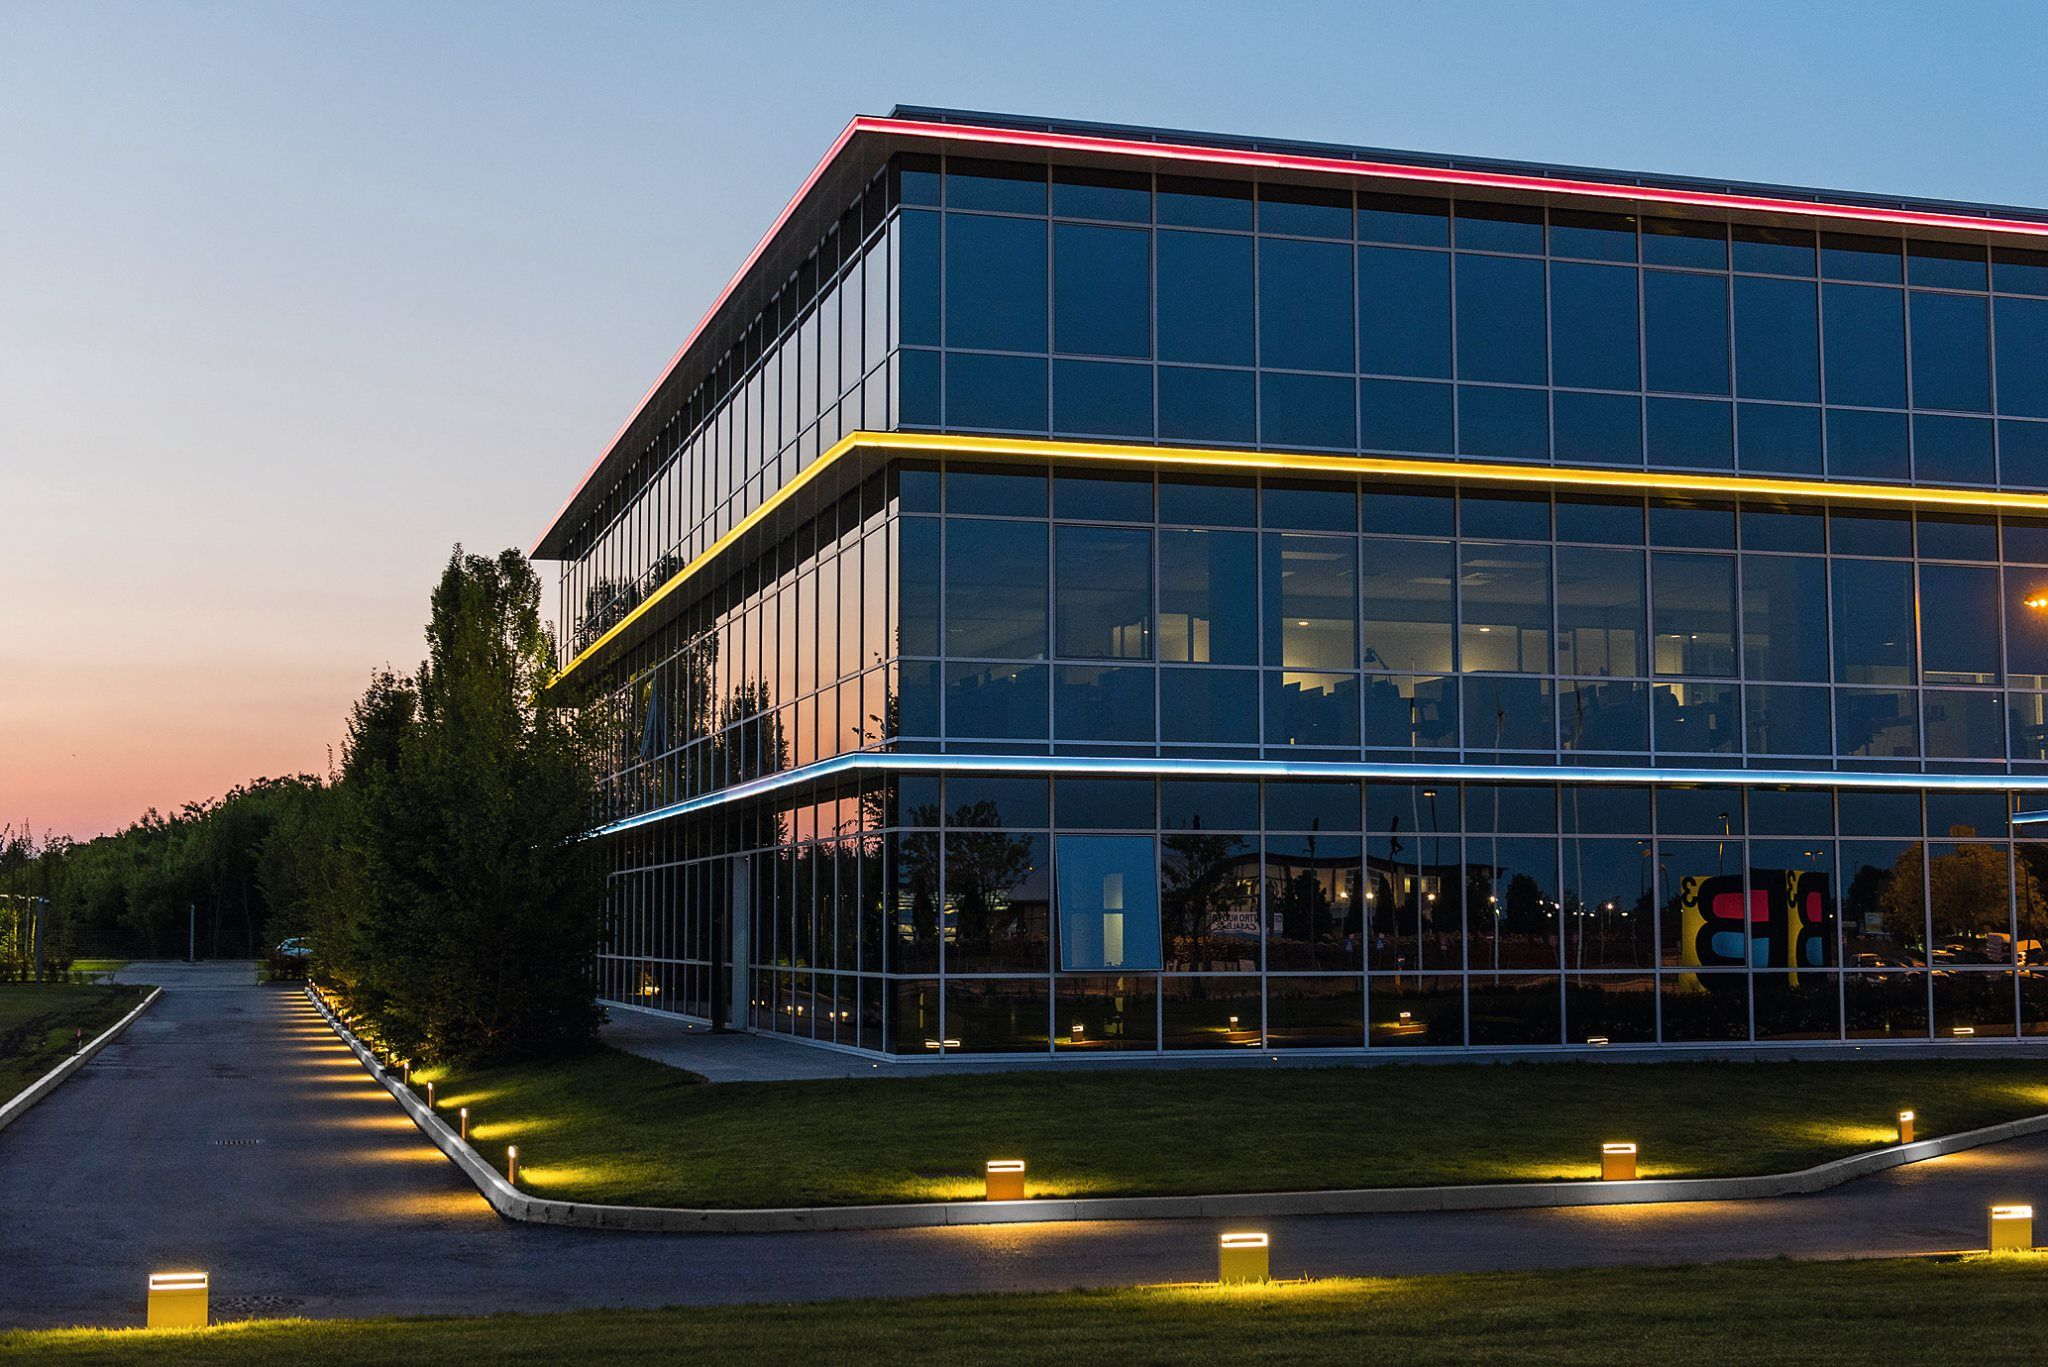 BCUBE Group looks to the future: the most modern principles of sustainability have guided the choices for the new headquarter in Casale Monferrato. #Simeslighting Cool #Bollards outline the external paths, contributing to the elegance of the project.  We thank Studio Pession Associato. Photo by Davide Bozzalla. #justlight #light #lighting #design #lightingdesign #outdoor #outdoorlighting #gardenlighting